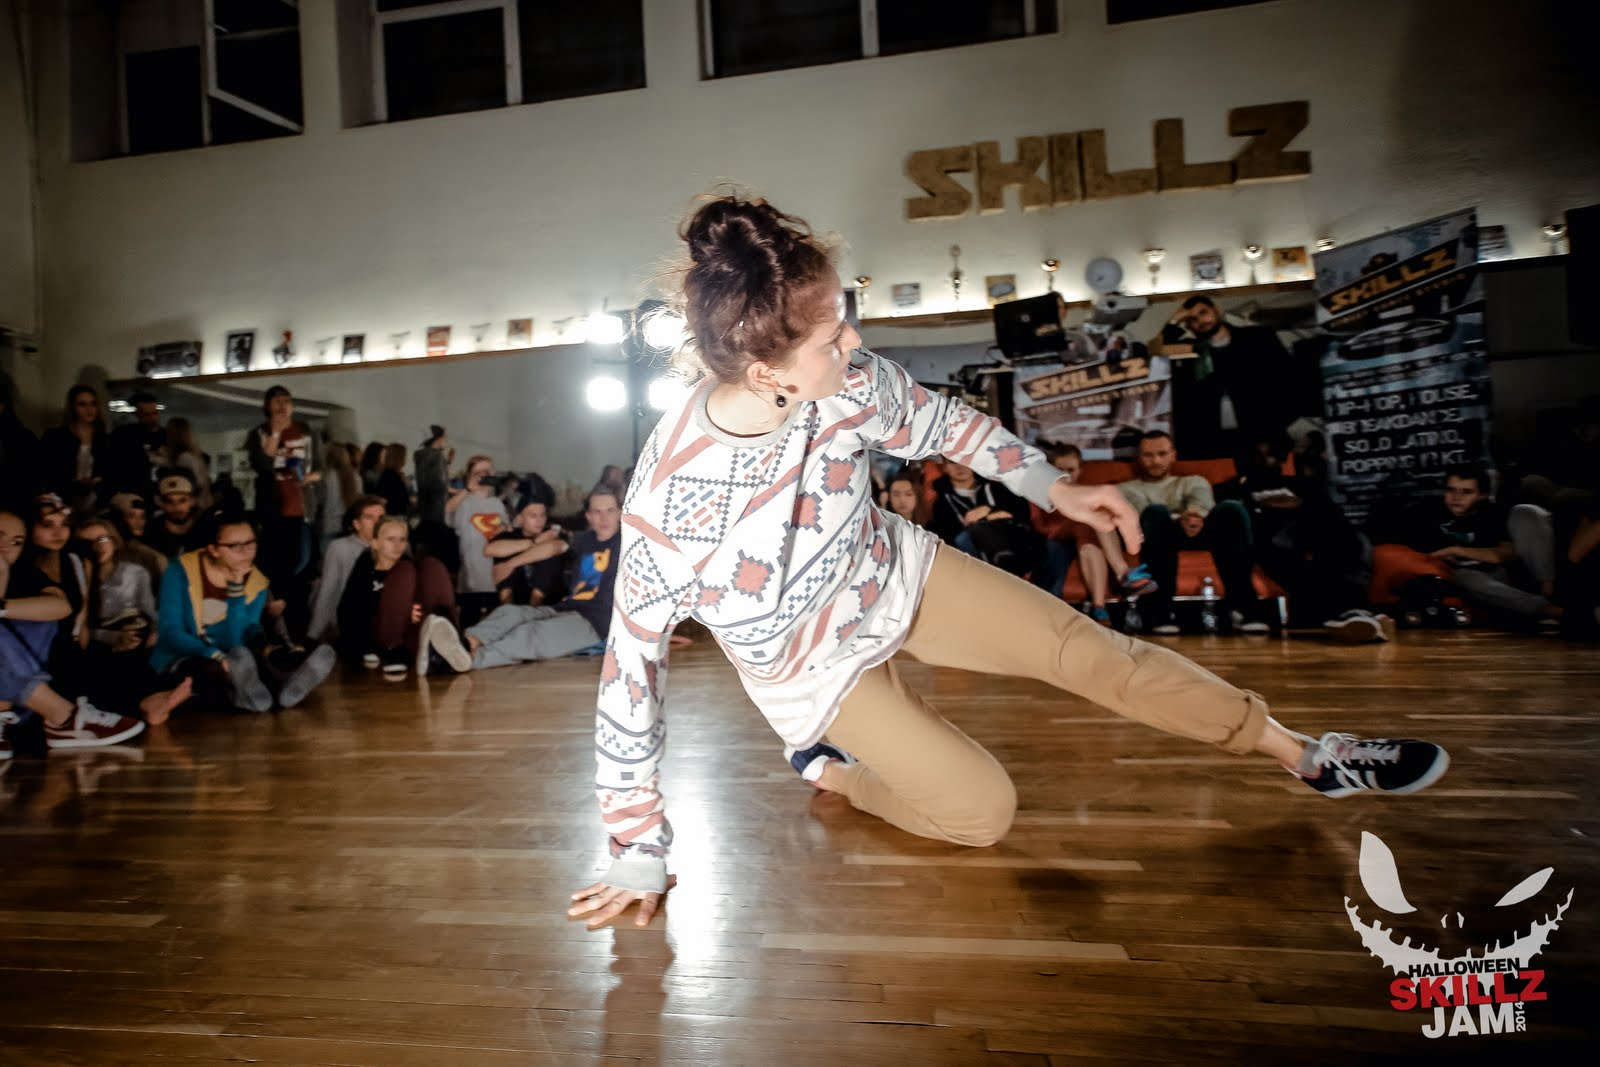 SKILLZ Halloween Jam Battles - a_MG_1576.jpg